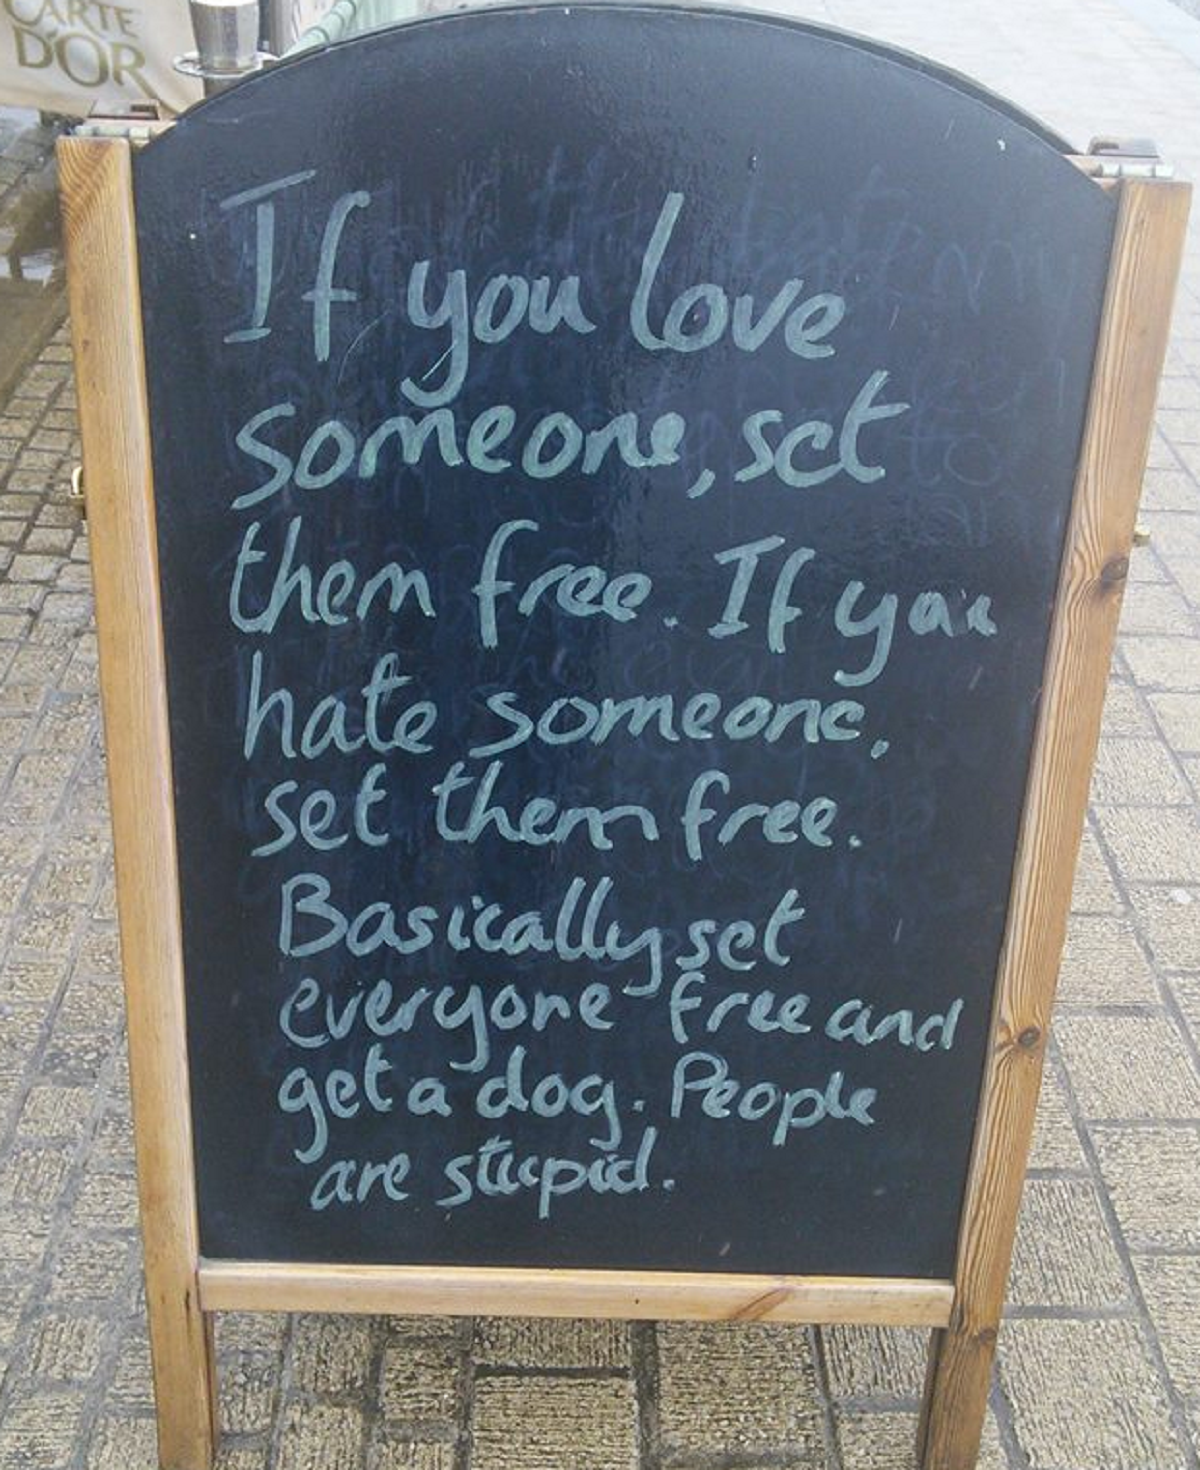 This café's sandwich board jokes are so cringe-making they border on genius